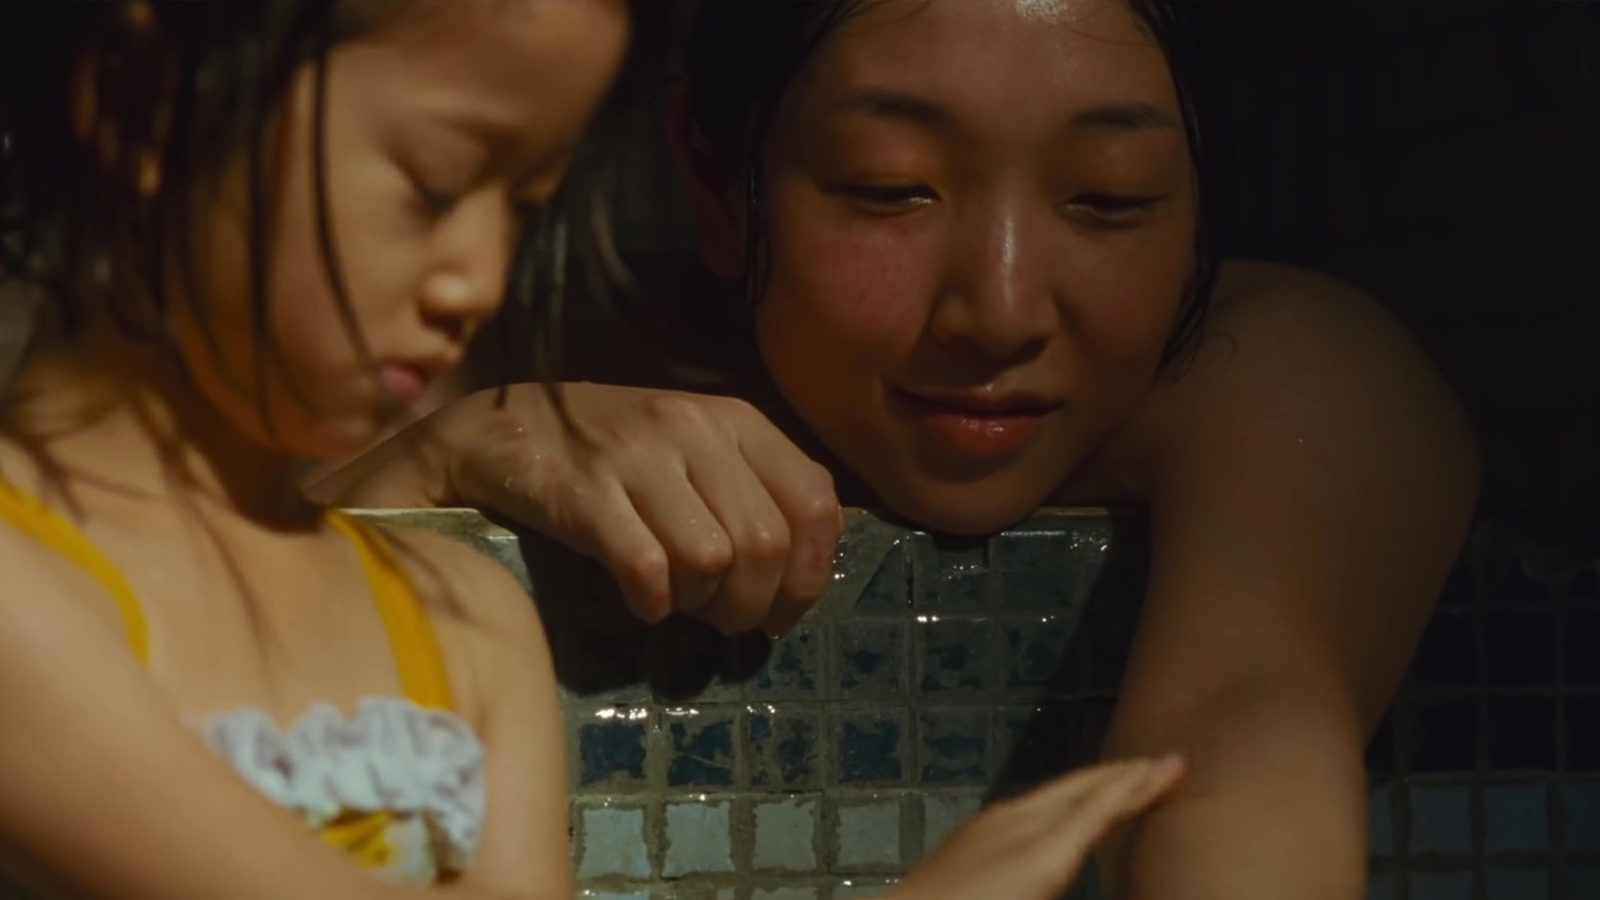 2. Shoplifters (dir. Hirokazu Kore-eda) - A family of small-time crooks take in a child they find outside in the cold.